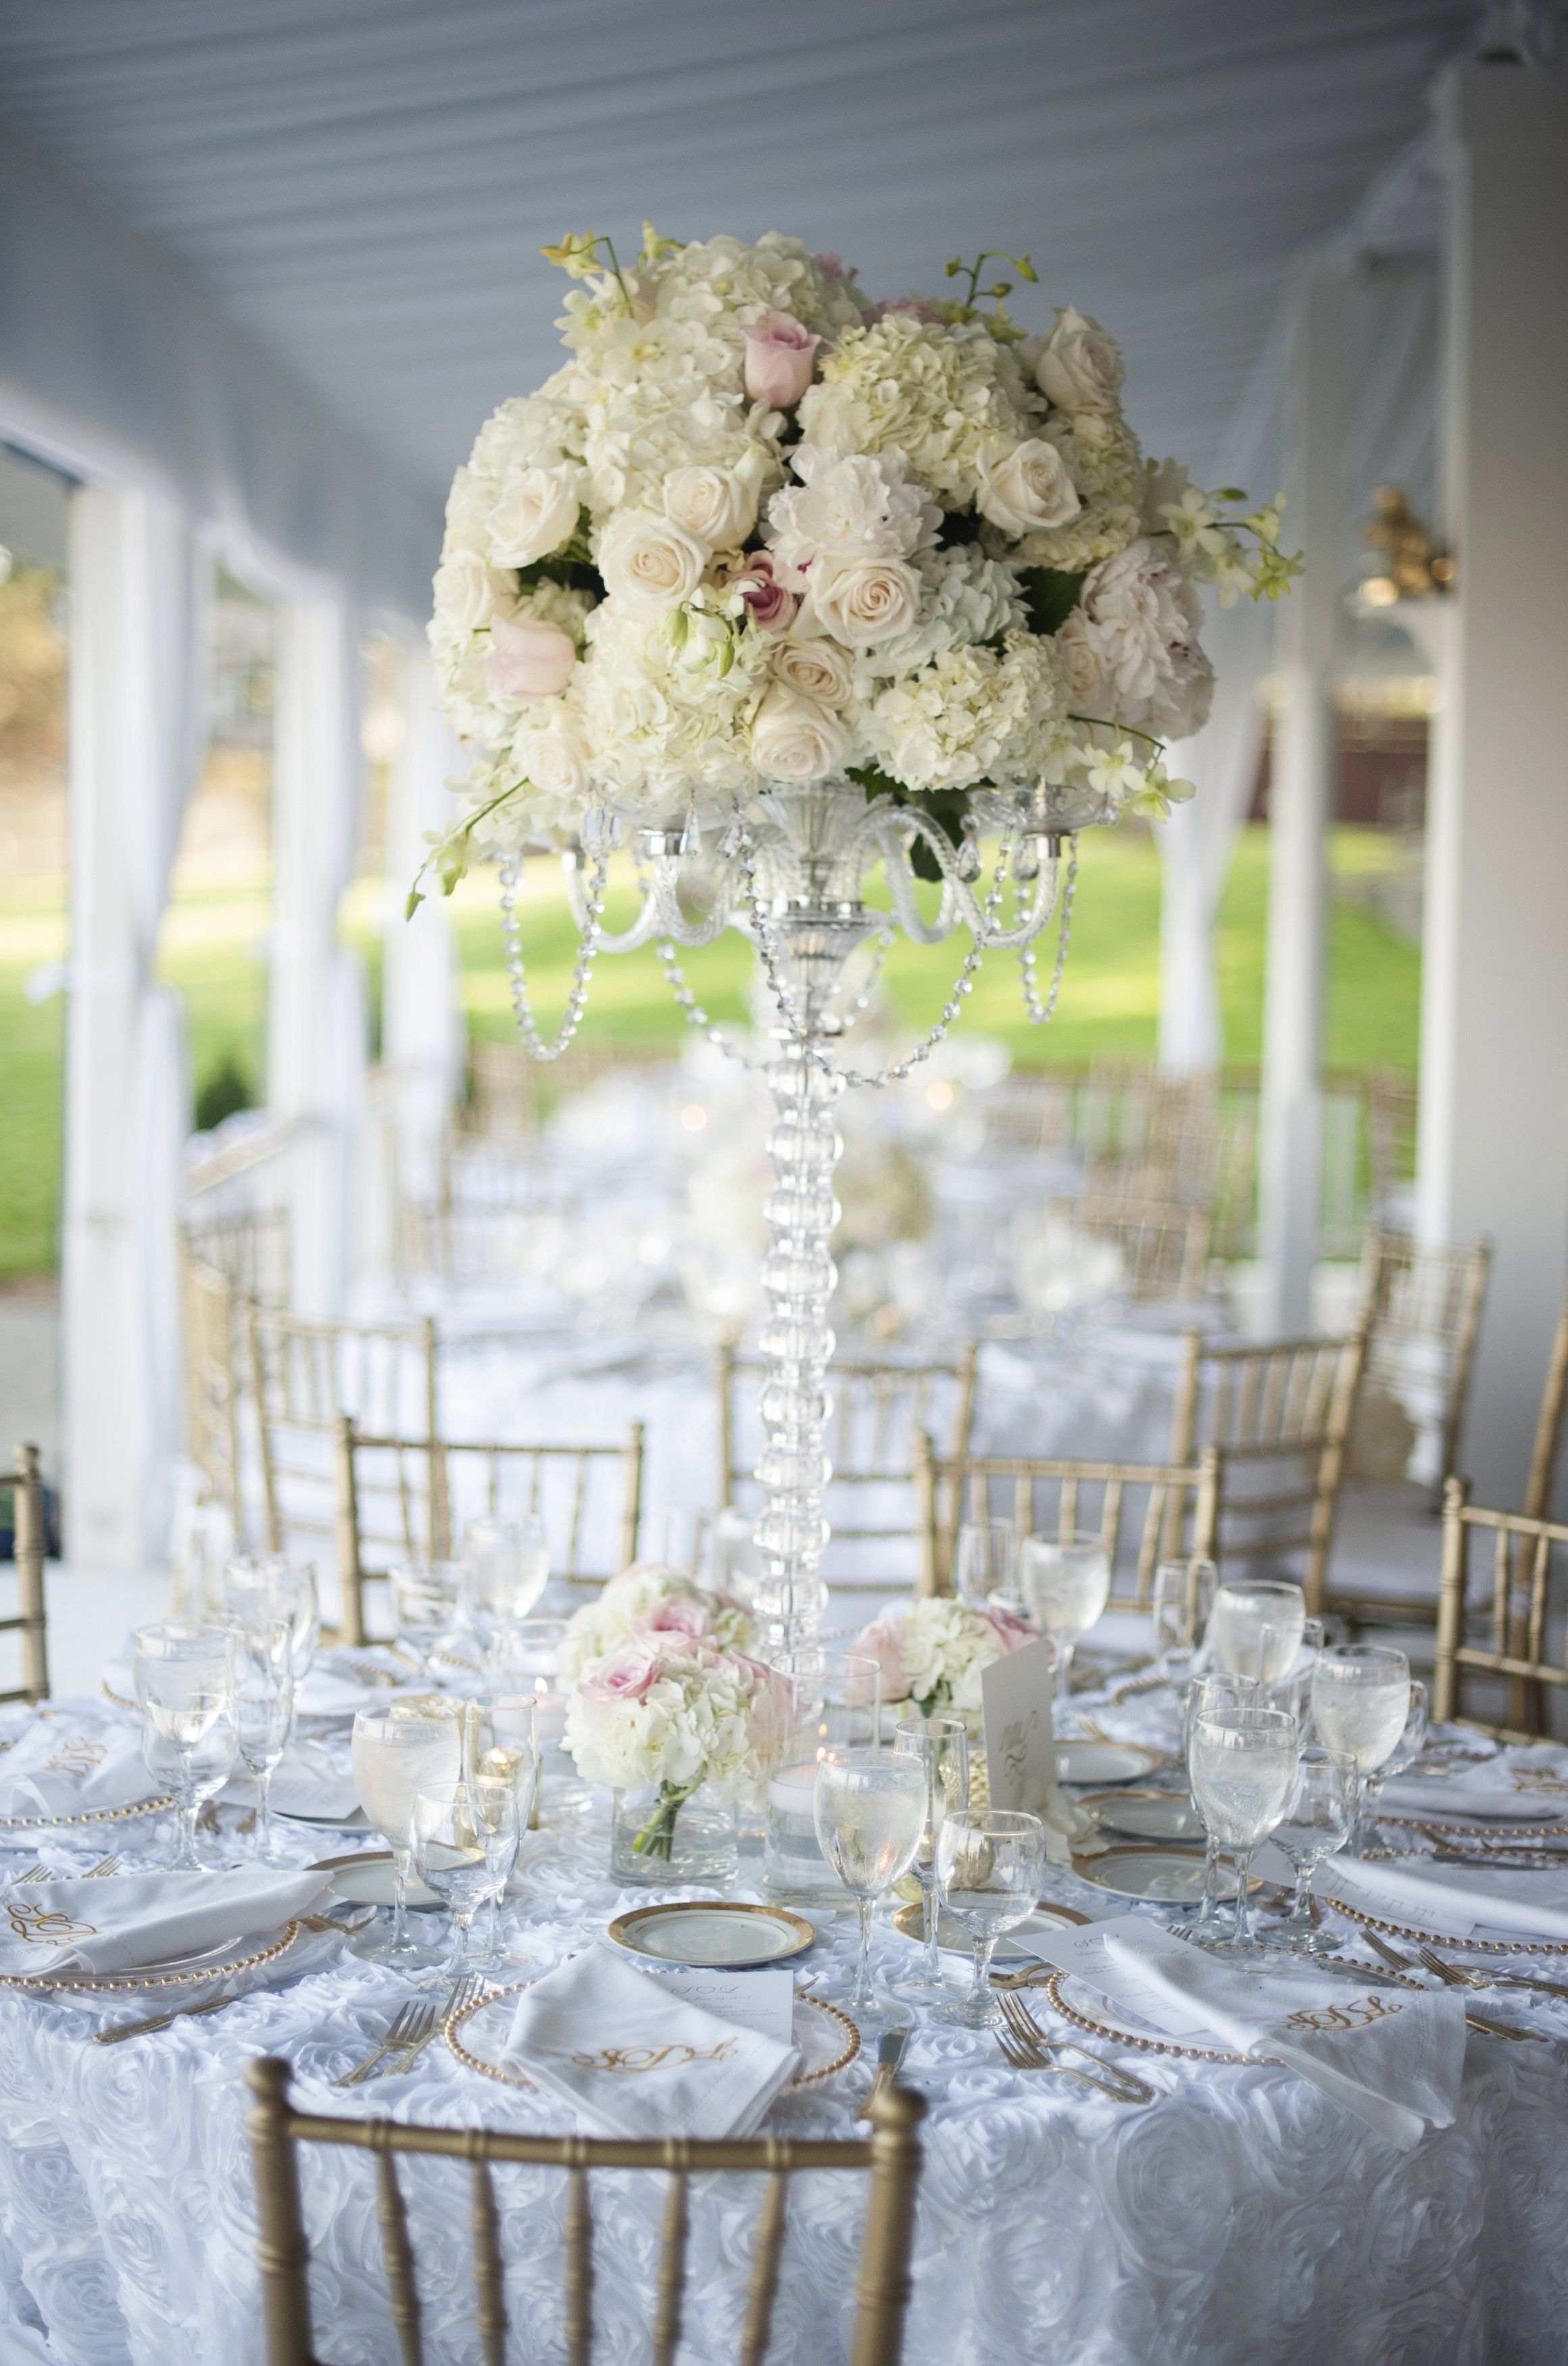 Elegant Floral Centerpieces | Wedding Flowers | Pinterest | Floral ...